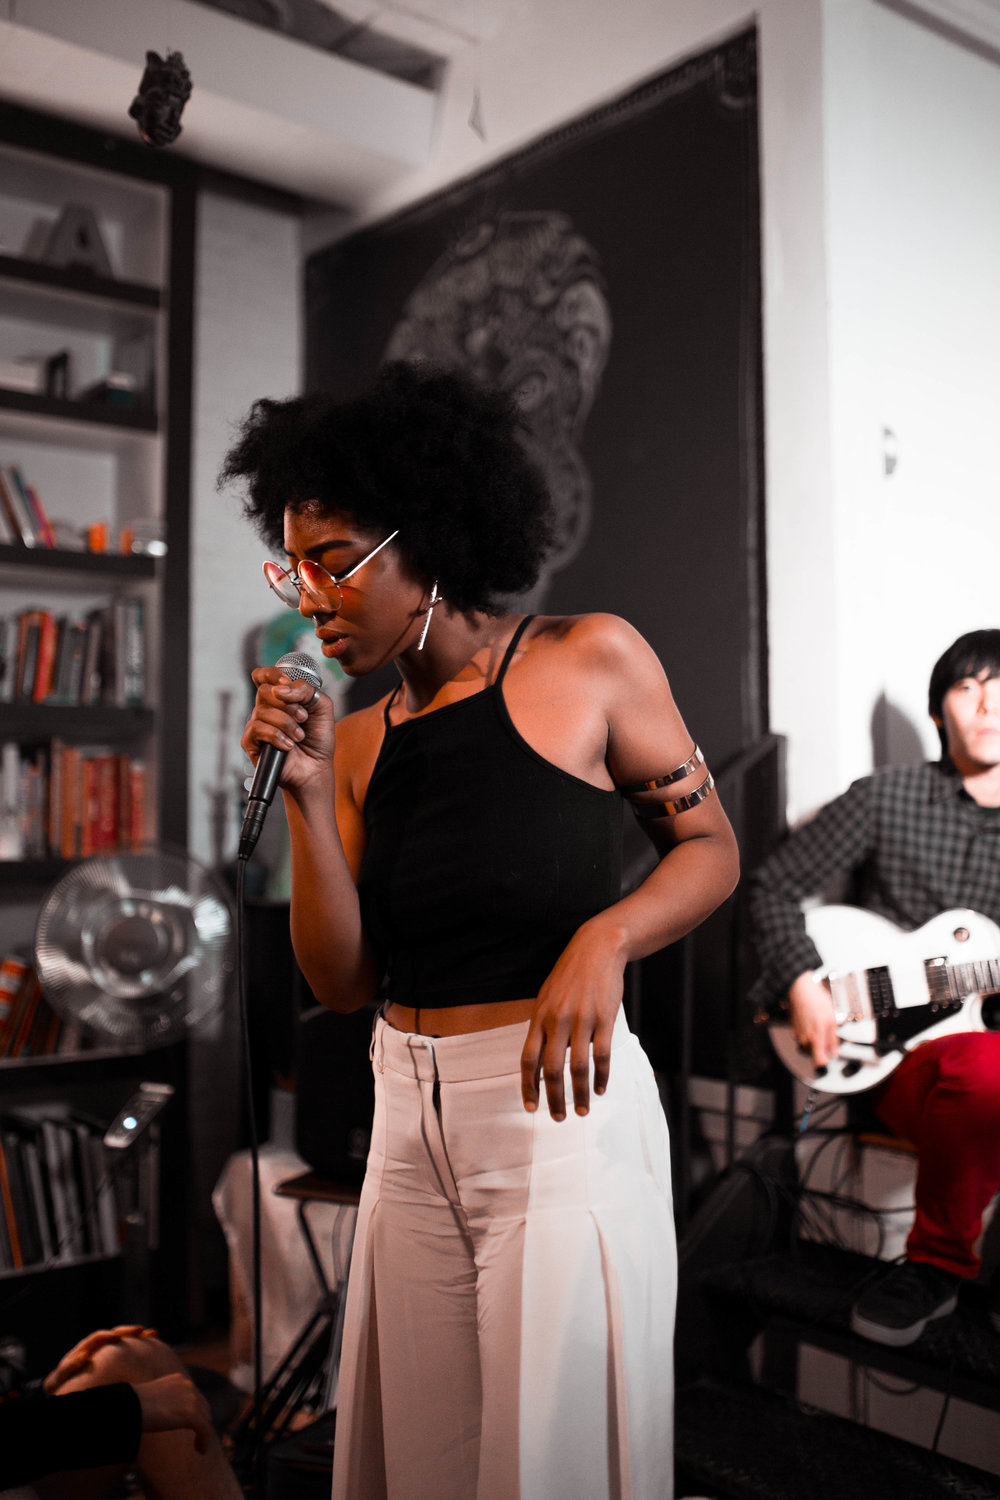 Synead performing for an audience with SoFar Sounds || Photo credit to Marina Barham